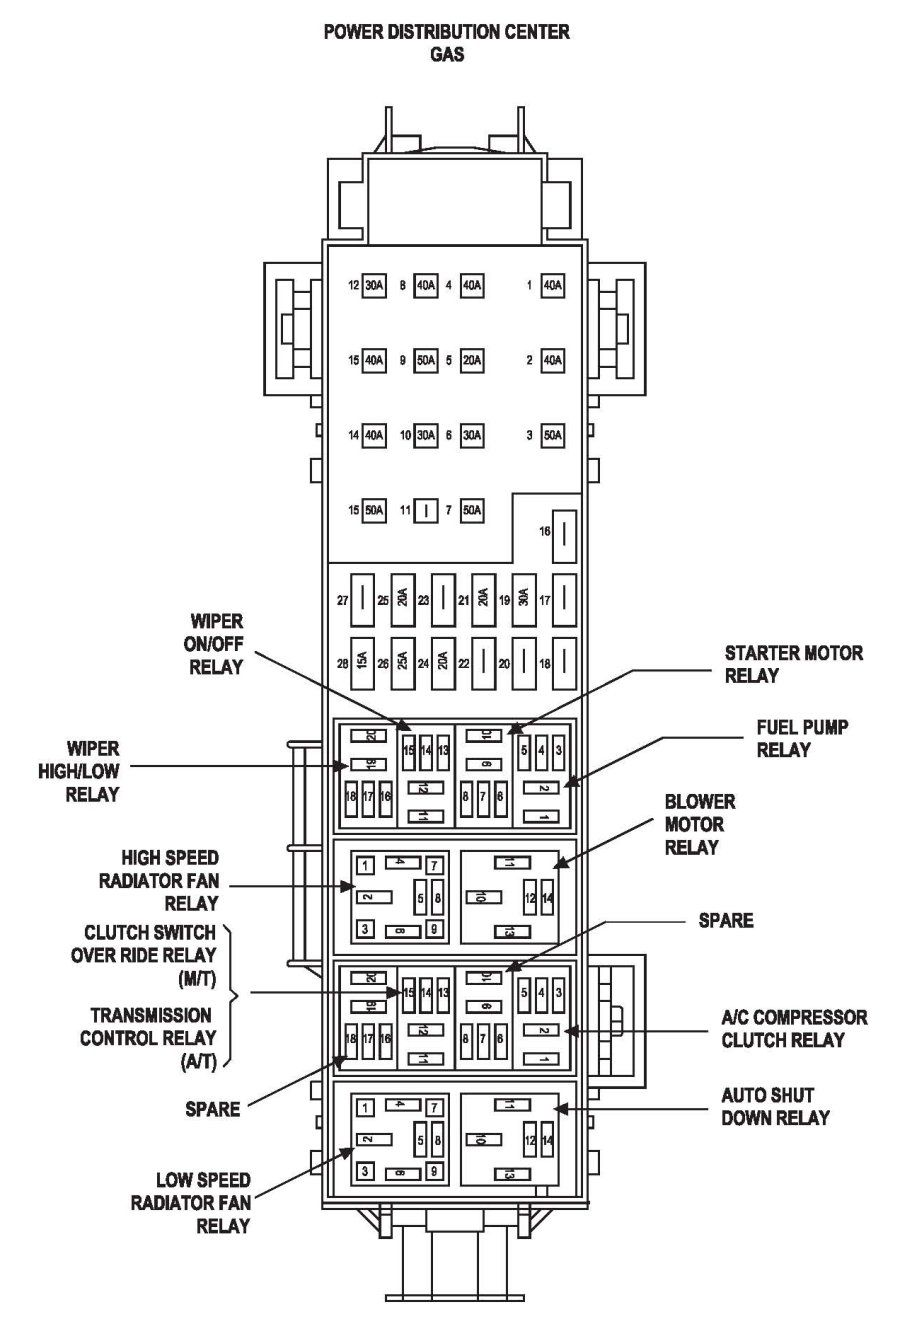 b3536c3739783eb19f827744cc42c3c4 jeep liberty fuse box diagram image details jeep liberty where is the fuse box on 2005 jeep liberty at gsmportal.co